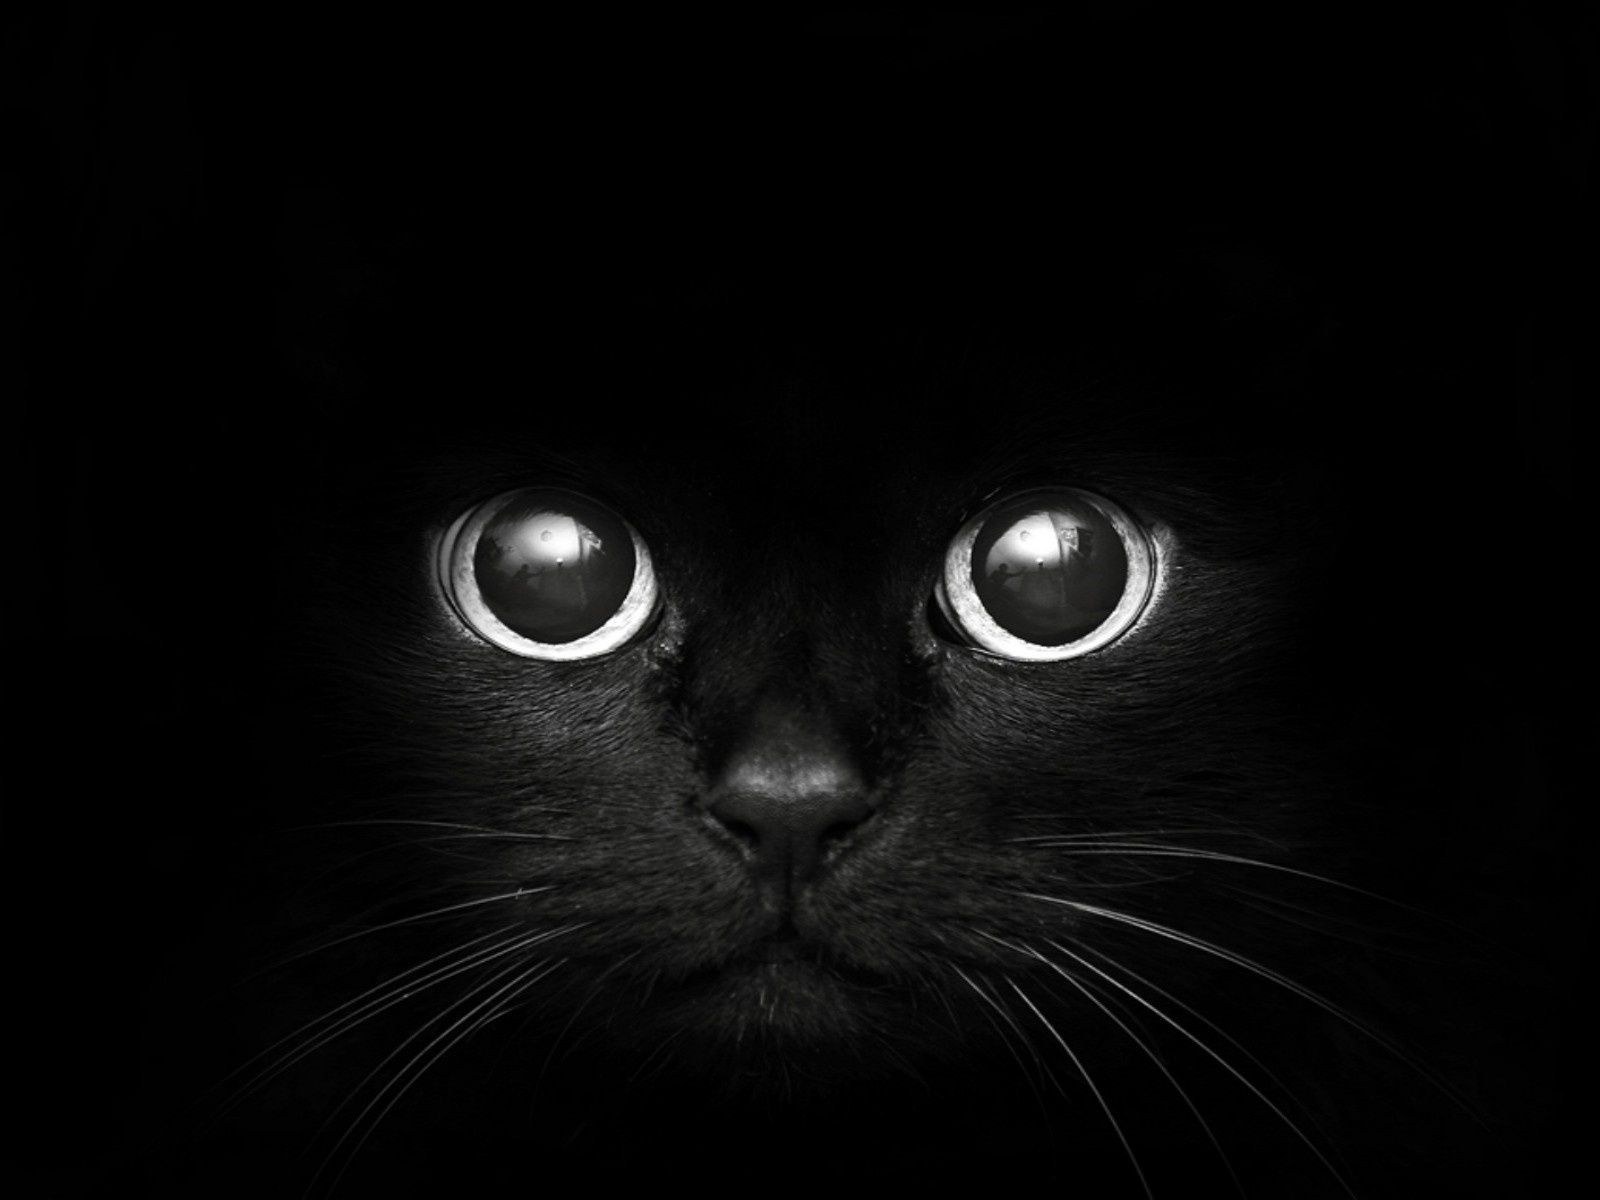 Black cats at Halloween. Are they really in danger? | #StyleAsylum ...